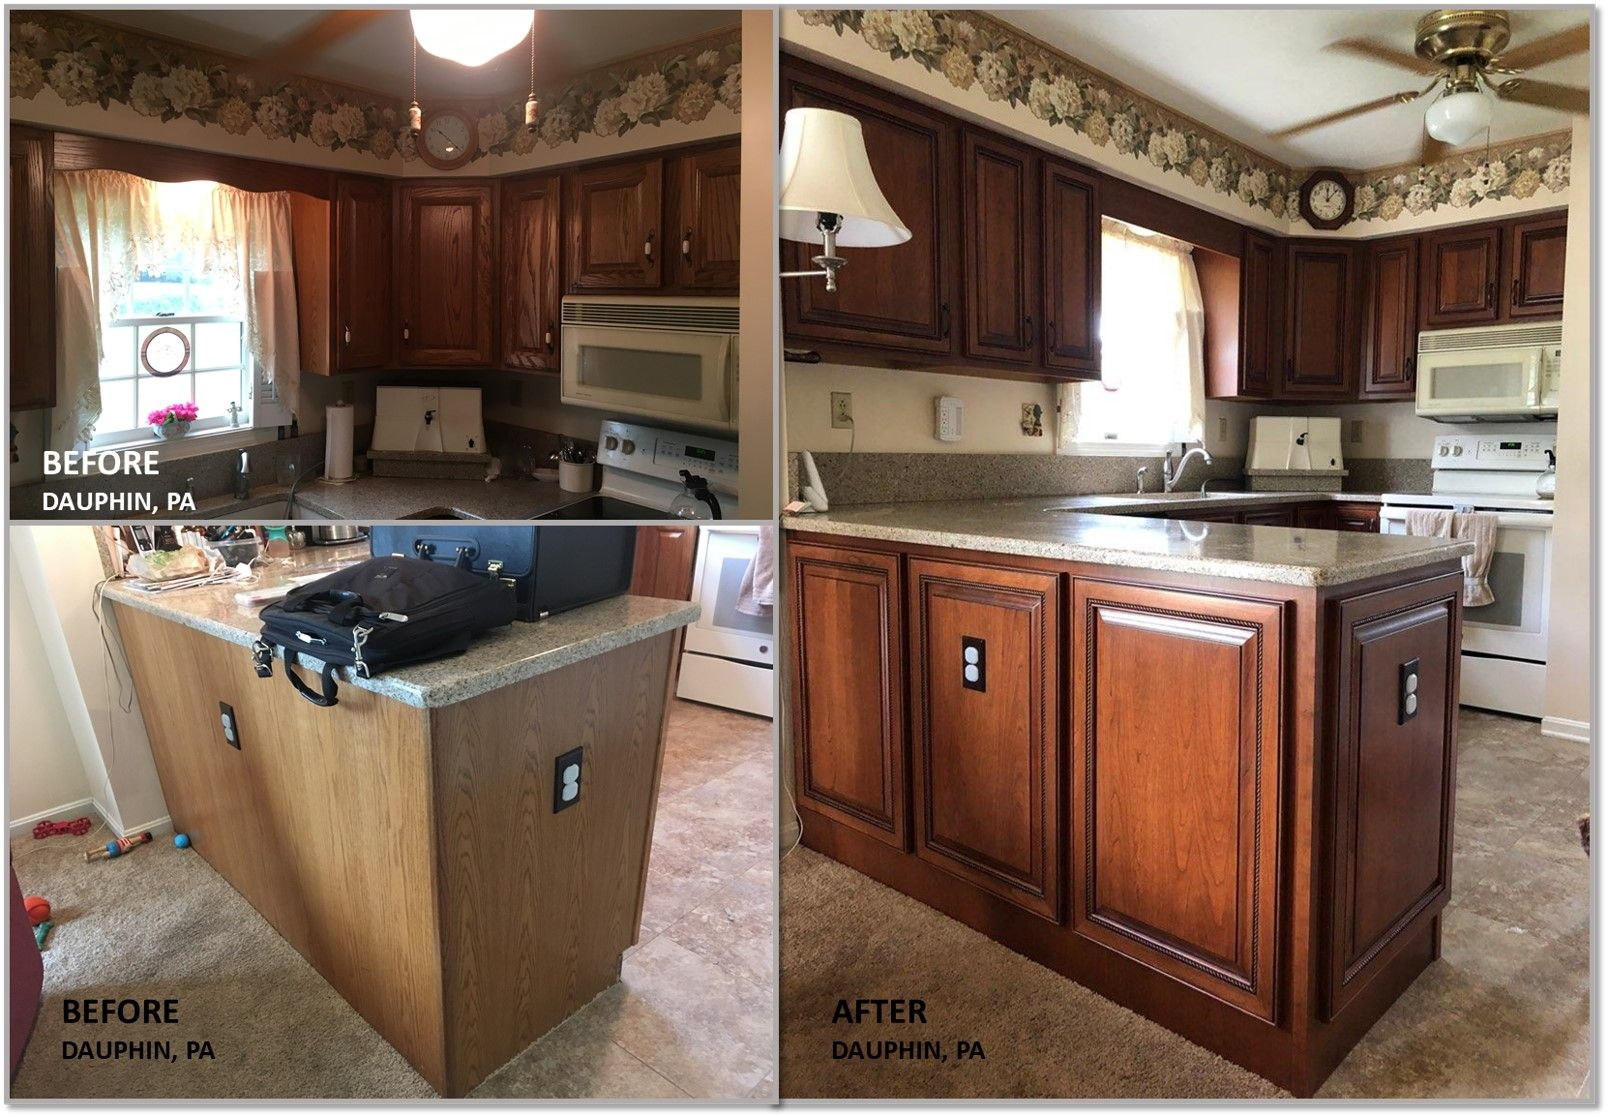 Outdated Cabinets Get Face Lift With Dark Honey Stained Doors Kitchen Refacing Stained Doors Cabinet Makeover